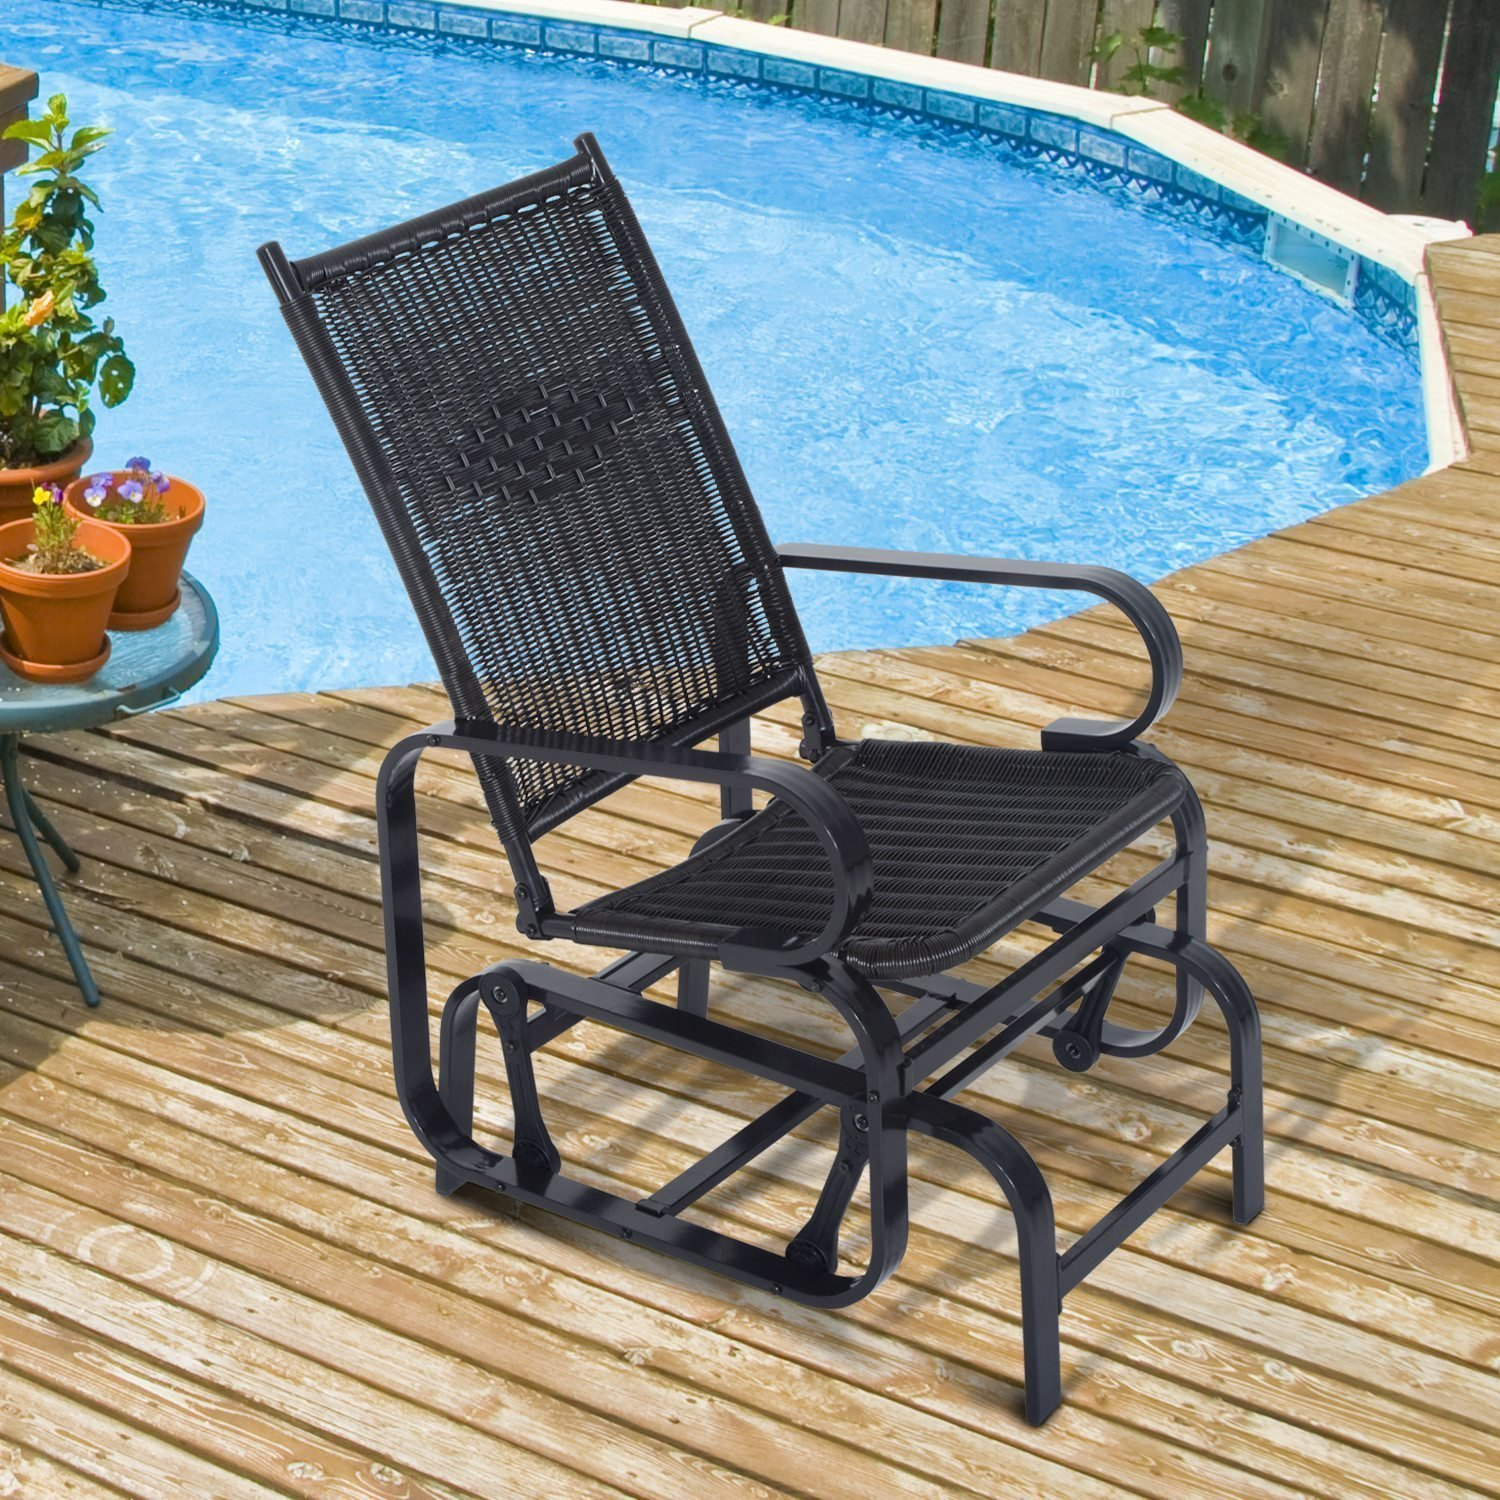 Inspirational Patio Furniture Swings and Gliders